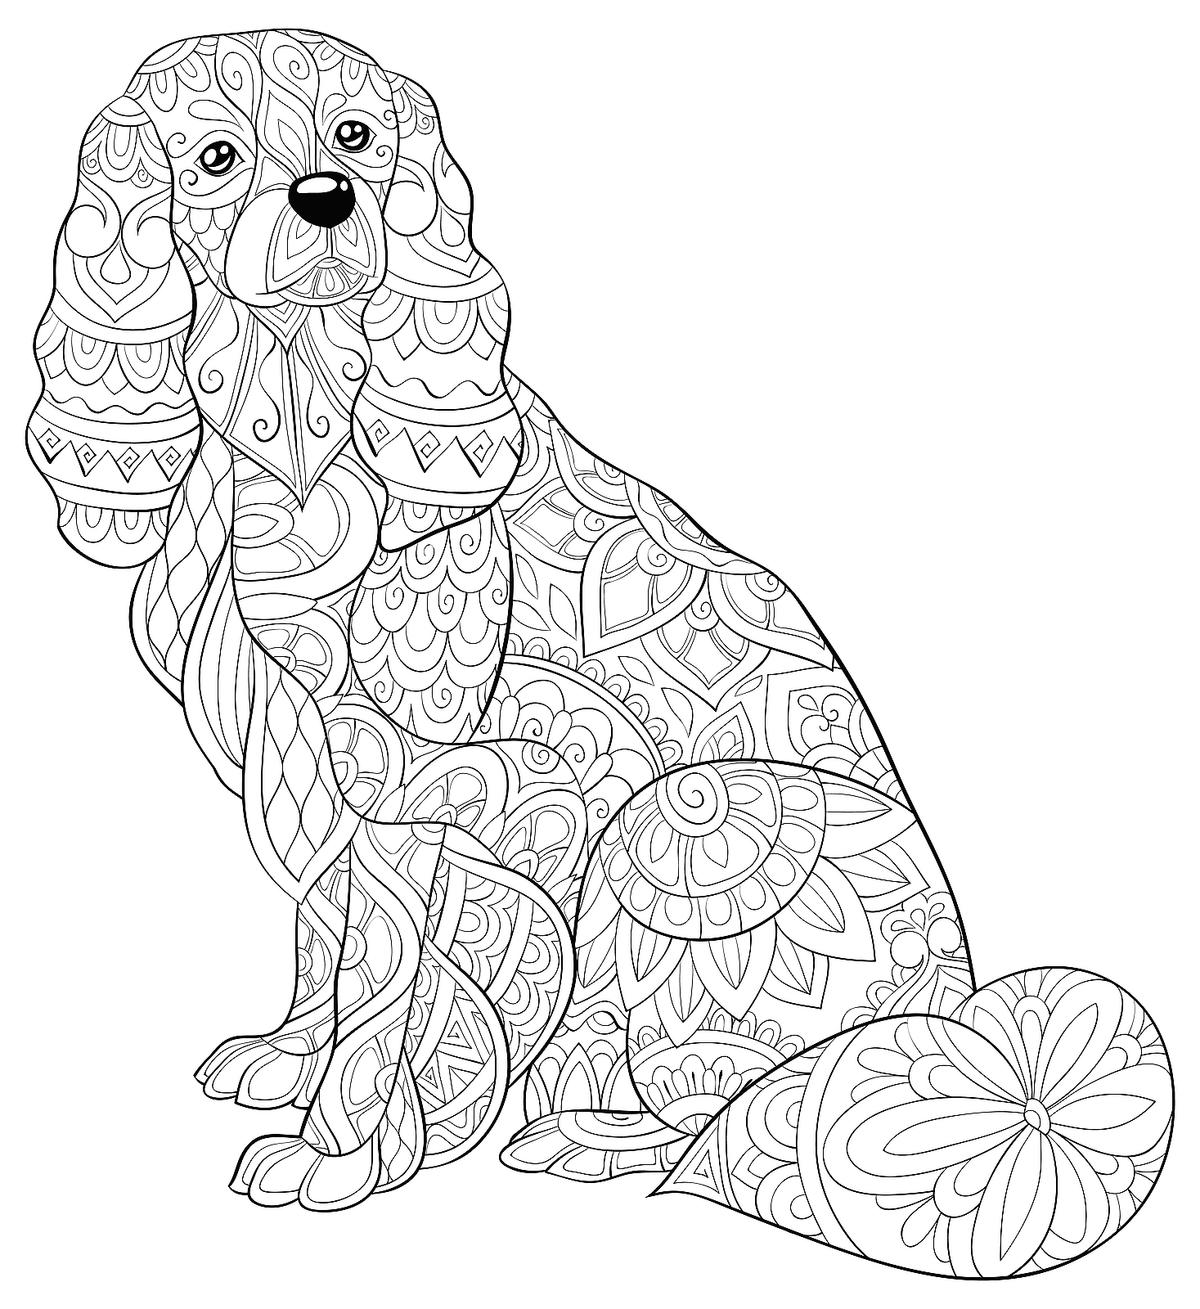 coloring pics of dogs dog coloring page of pics coloring dogs